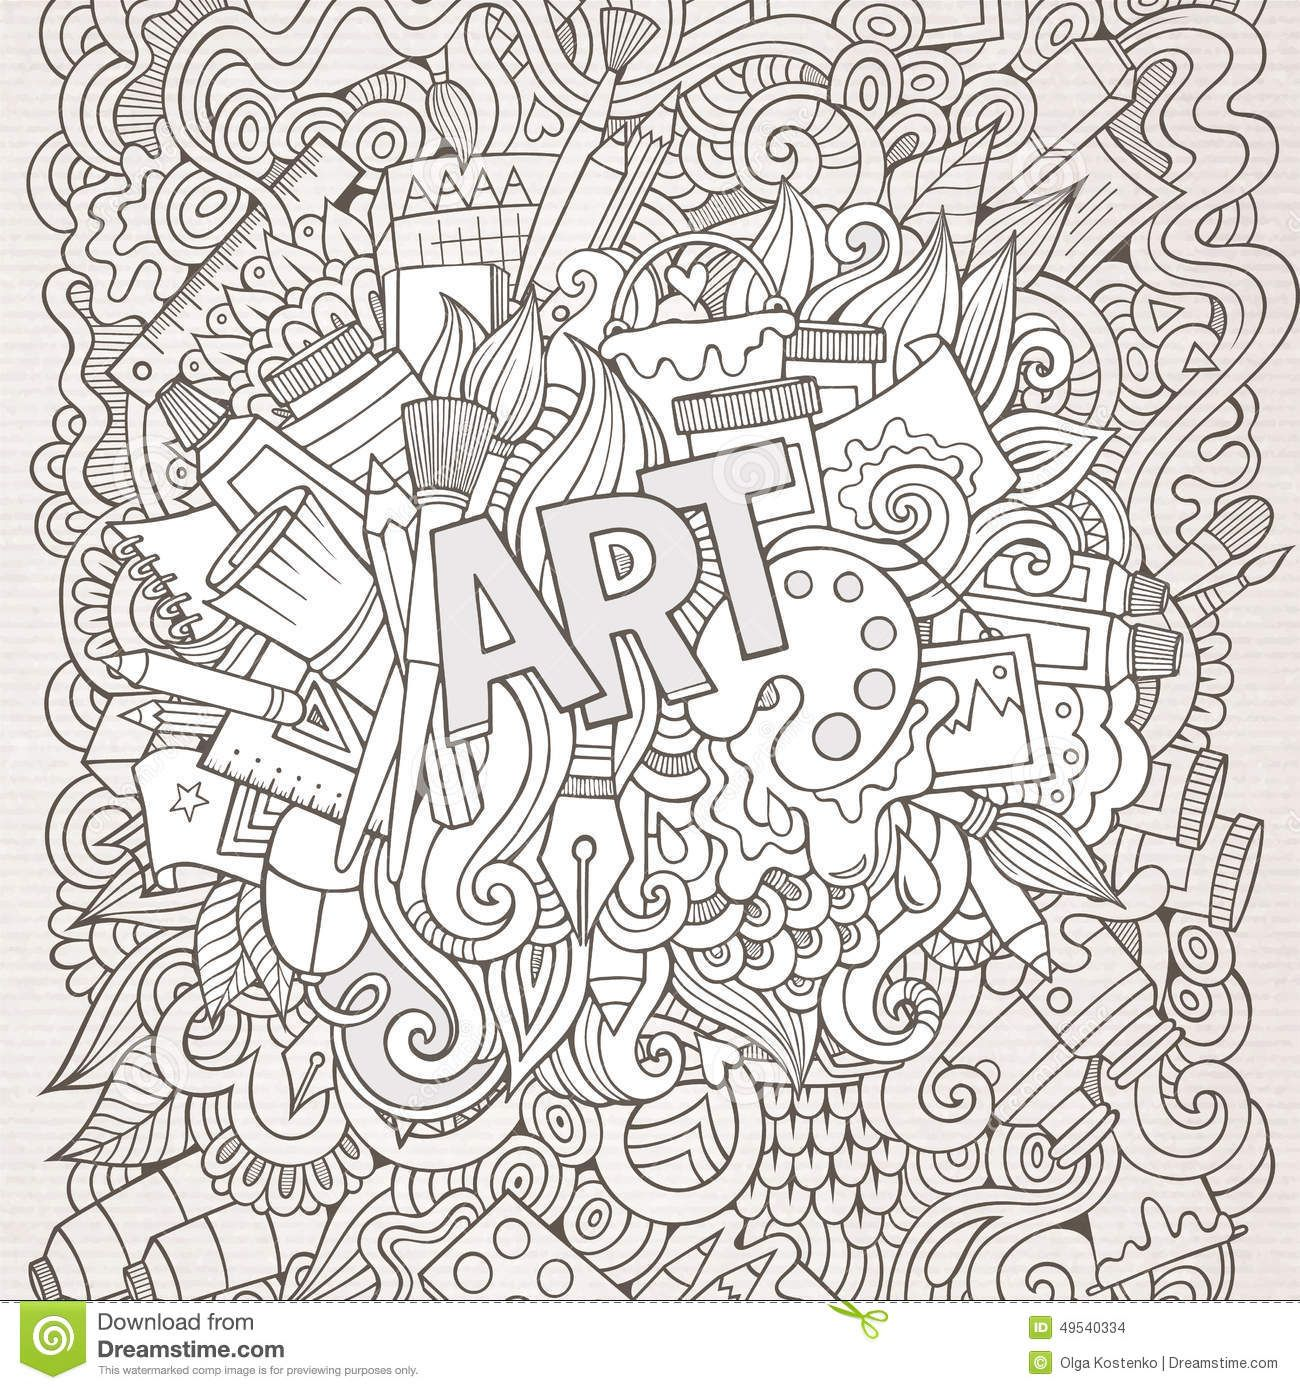 Abstract Drawing Coloring Pages : Abstract doodle zentangle zendoodle paisley coloring pages